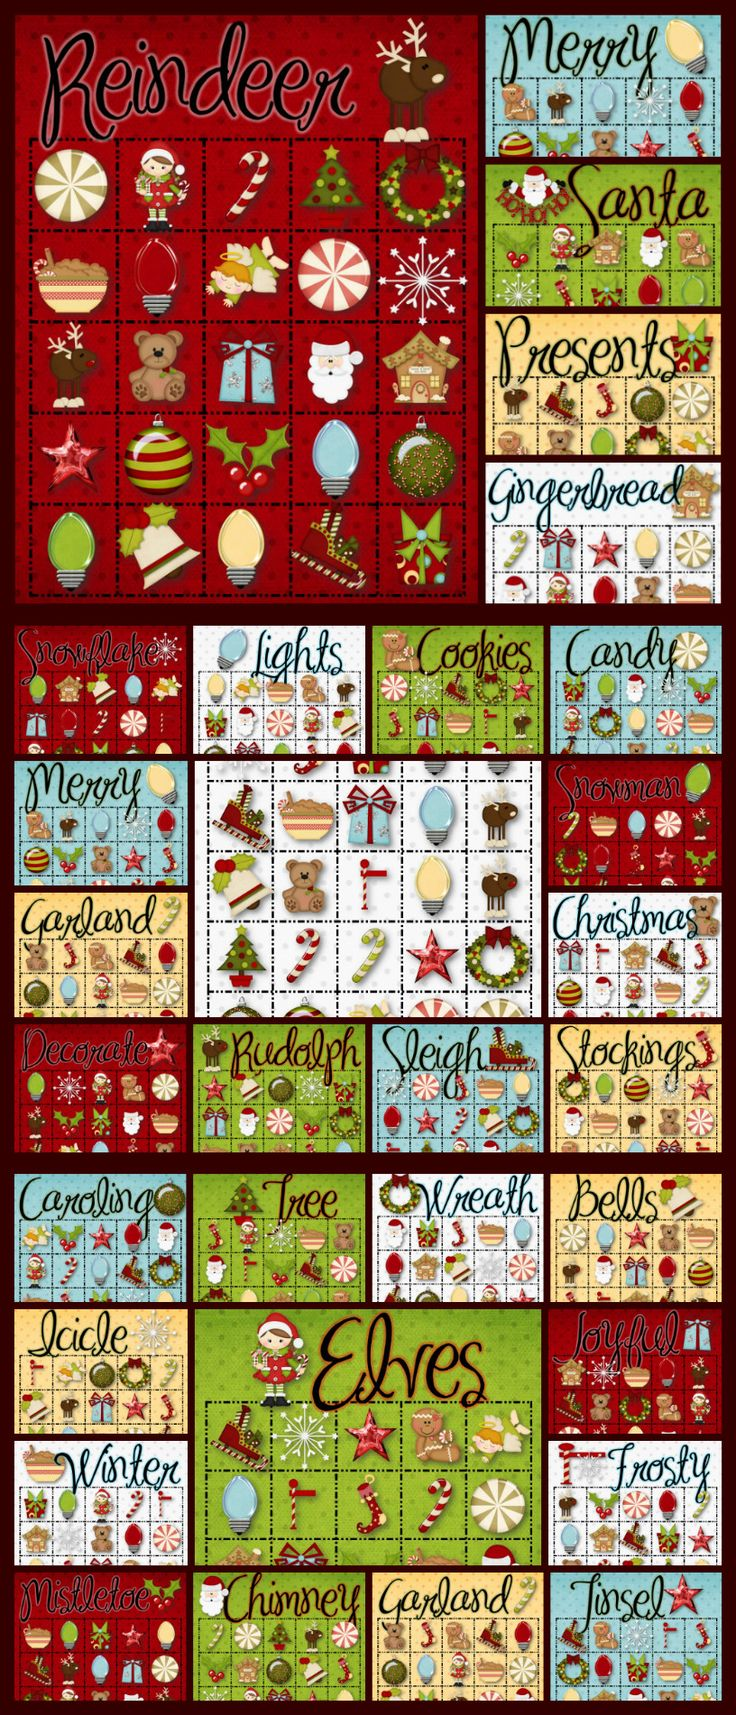 30 Christmas Bingo Cards - INSTANT DOWNLOAD - Celebrate Christmas with this fun and festive Bingo game. 30 different playing cards and a calling card set. Happy Holidays!